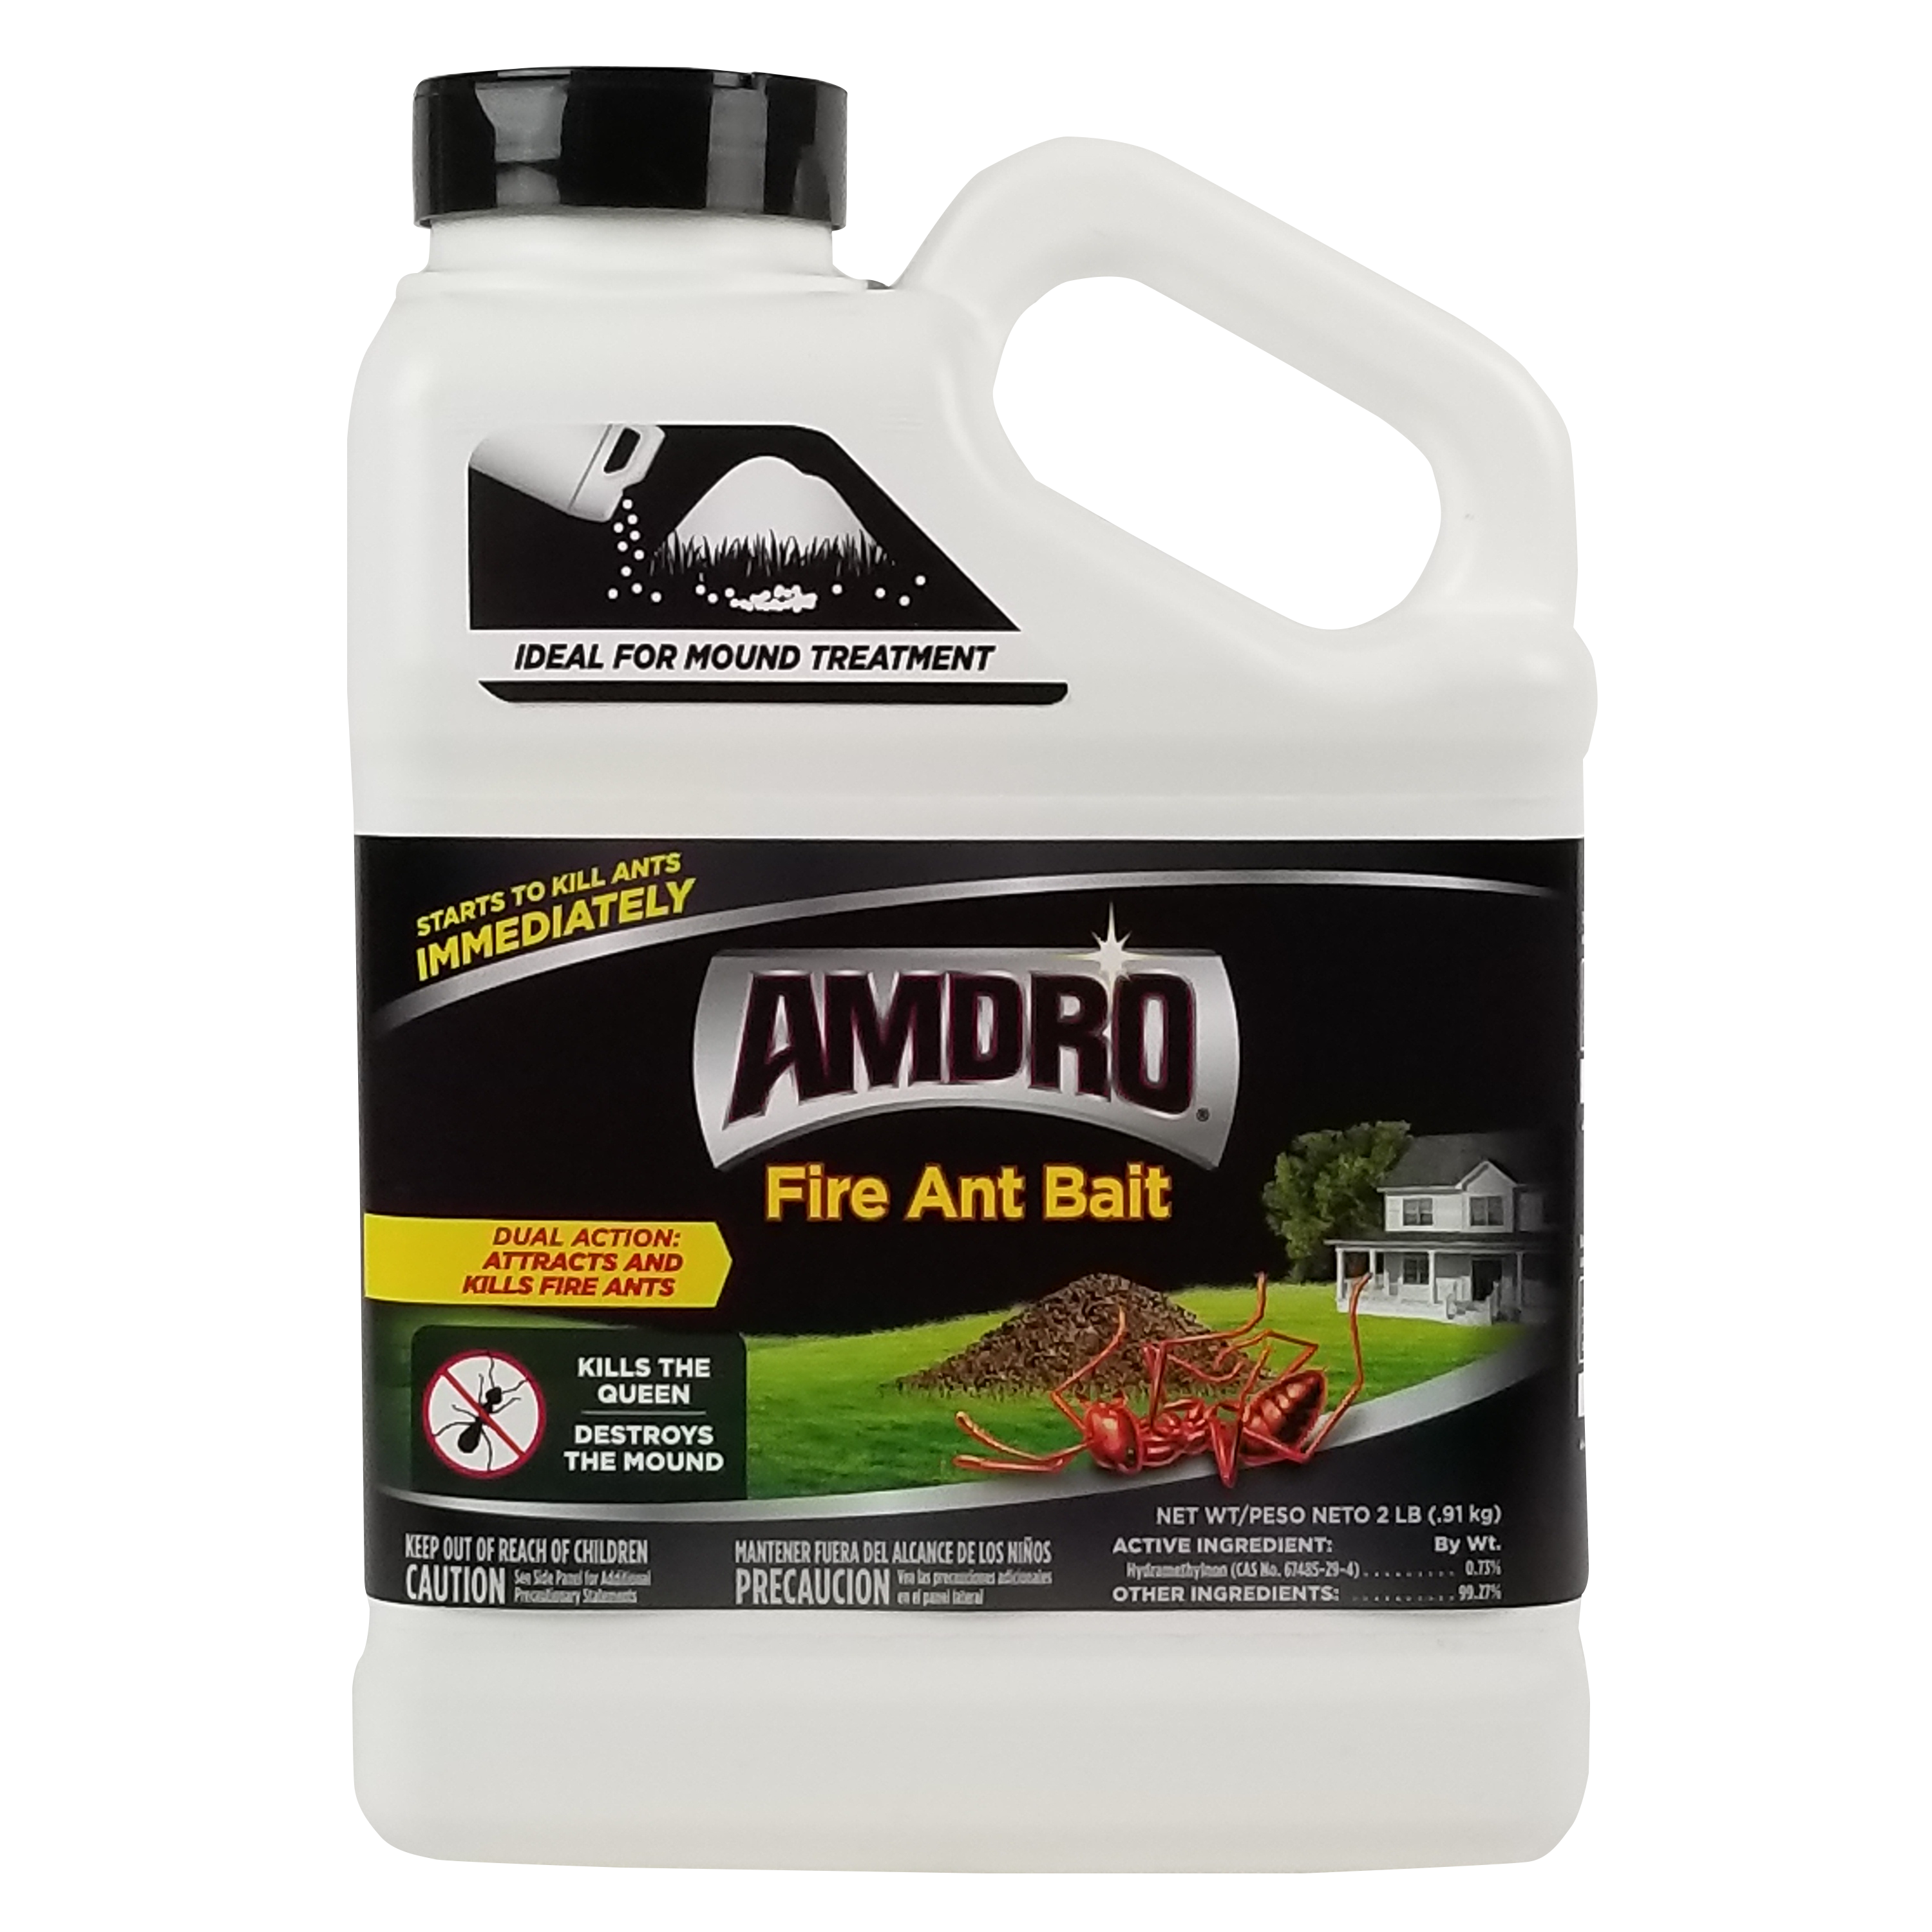 Amdro Fire Ant Bait Mound Treatment Fire Ant Killer, 2 Pounds